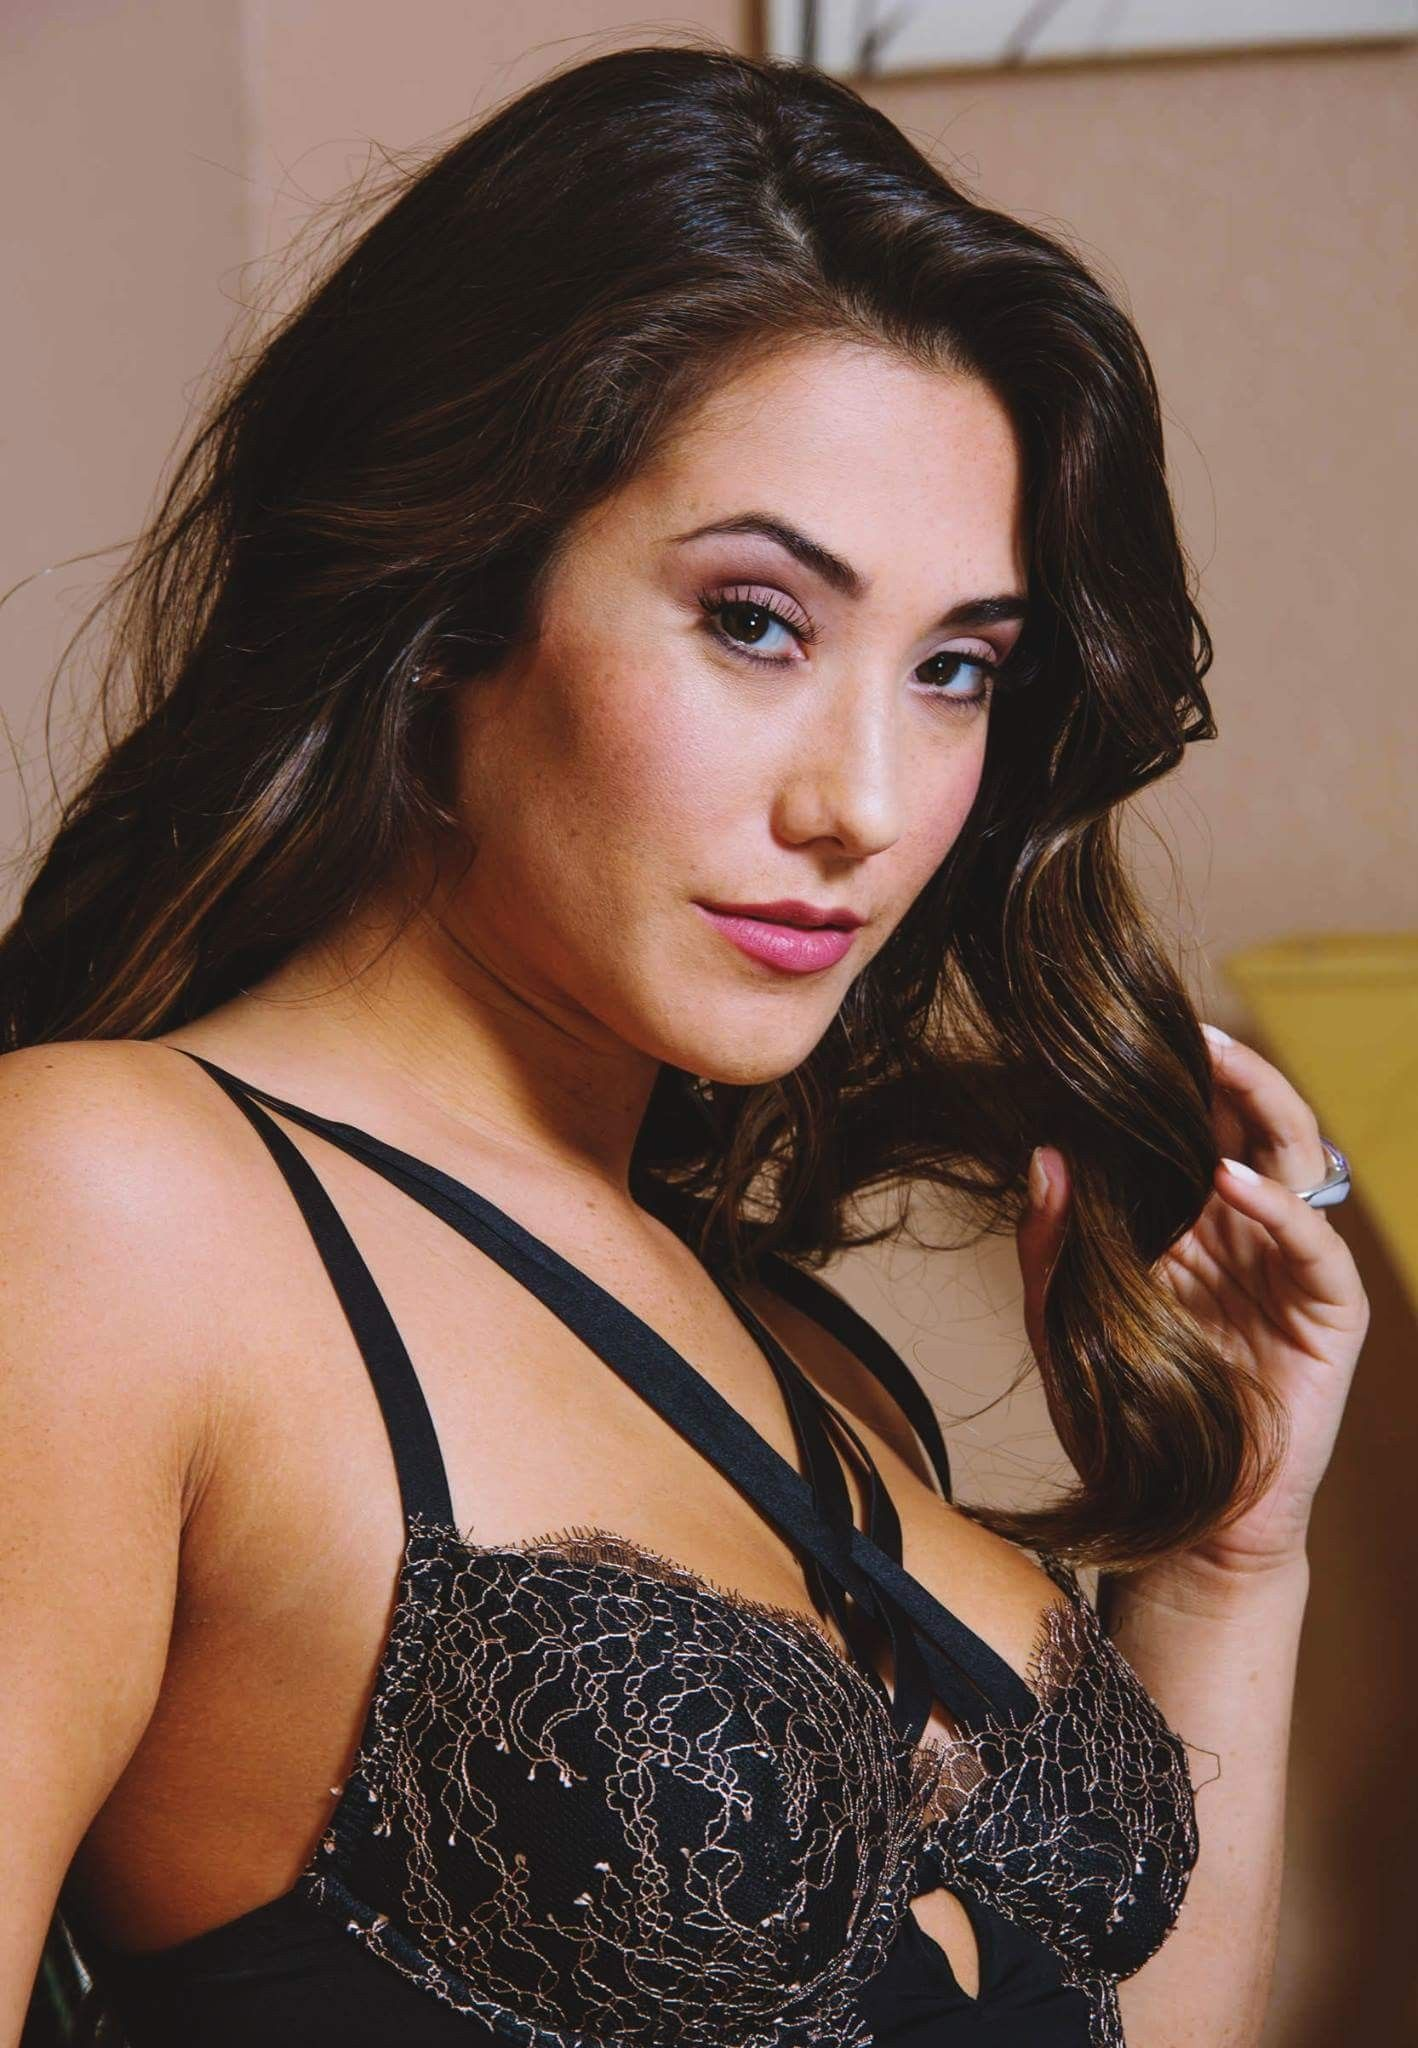 eva lovia | actresses and models | pinterest | models and woman